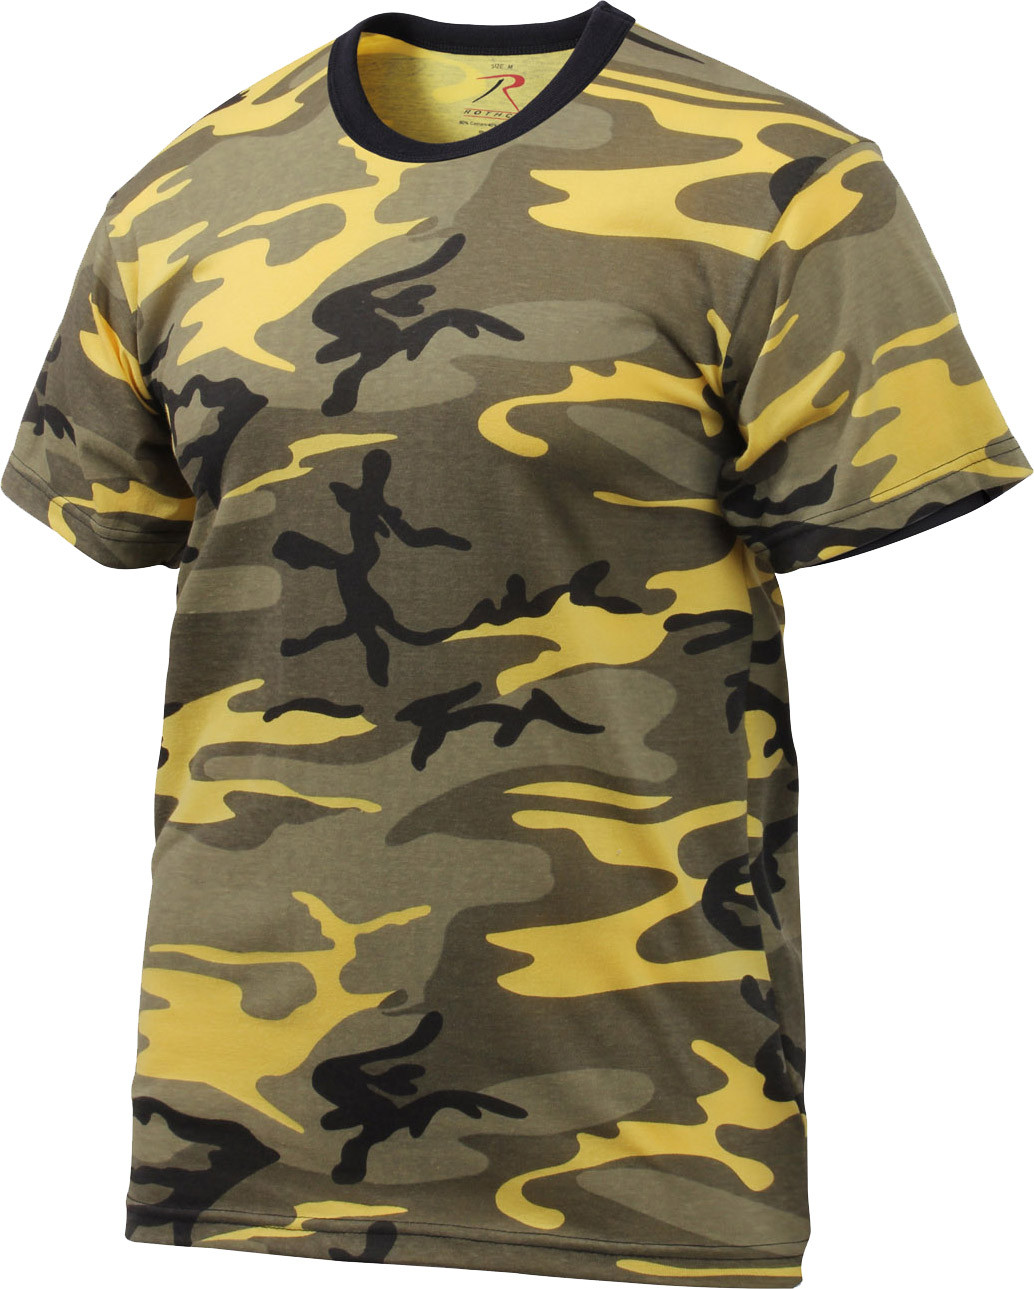 stinger yellow camouflage military short sleeve t